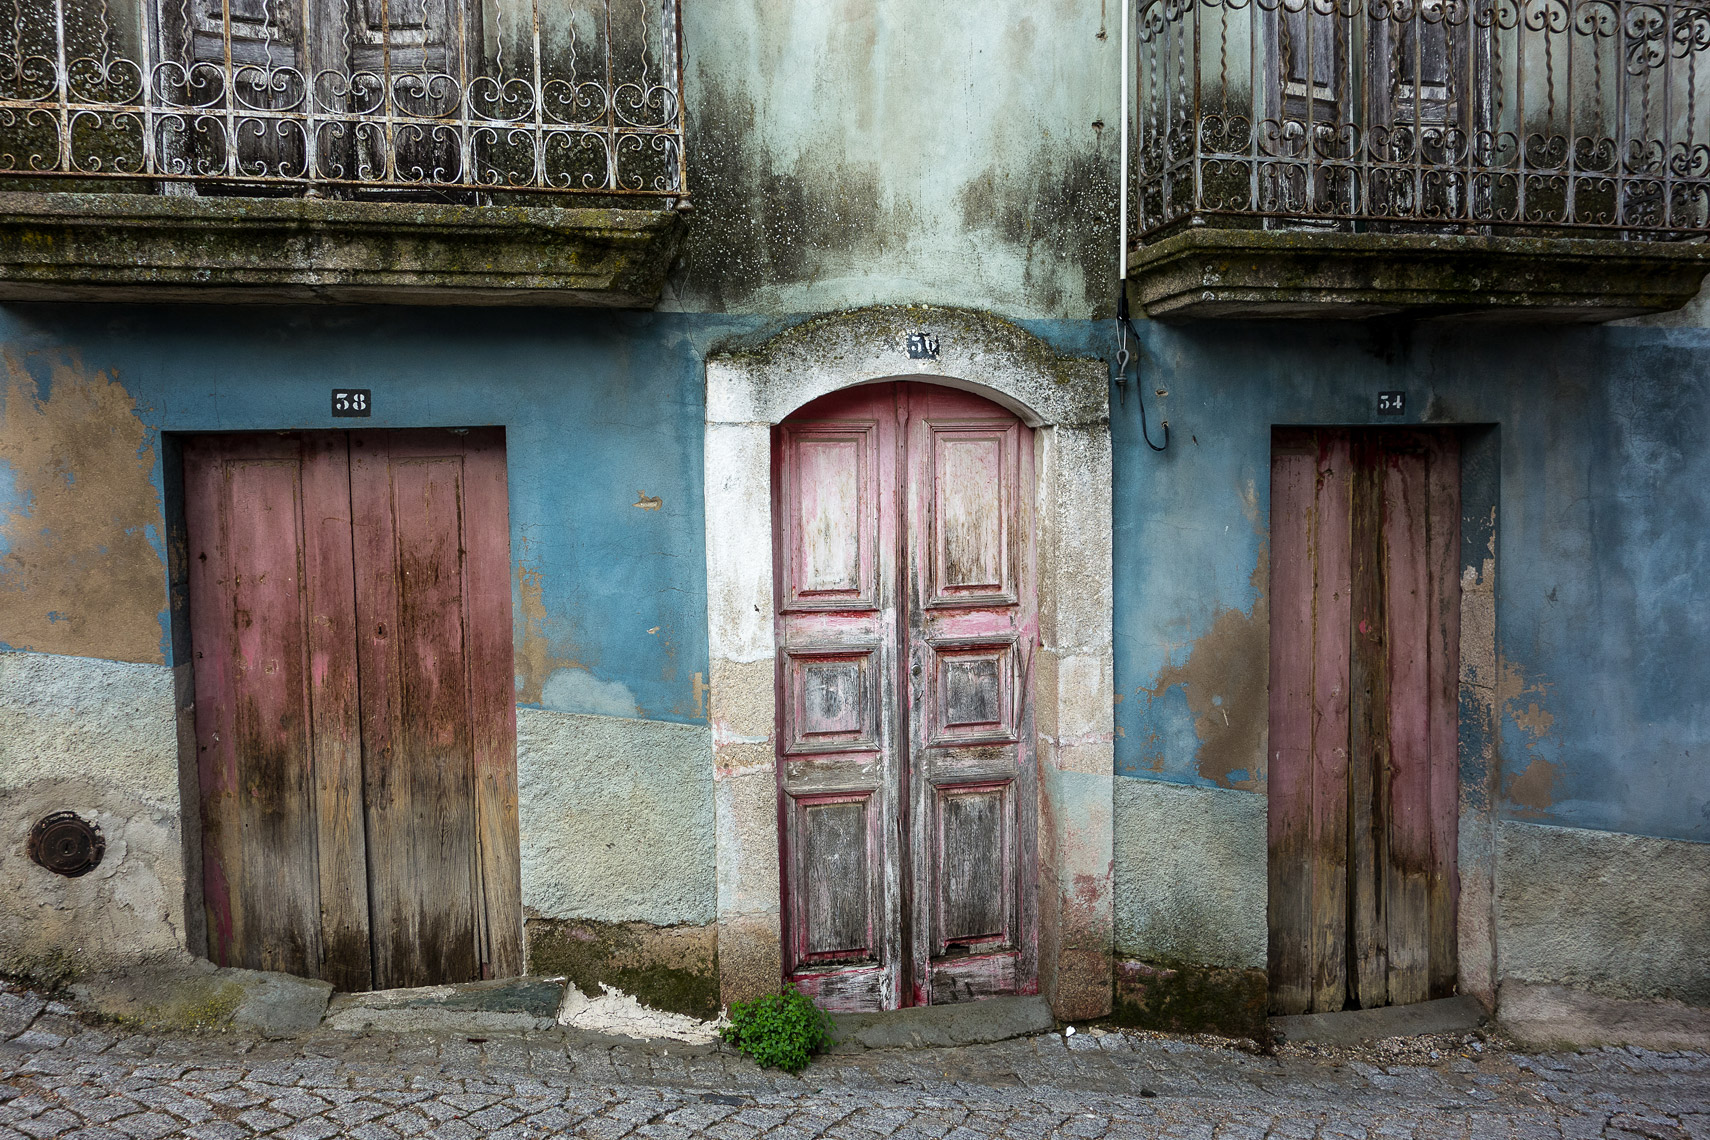 Doorways in Portugal